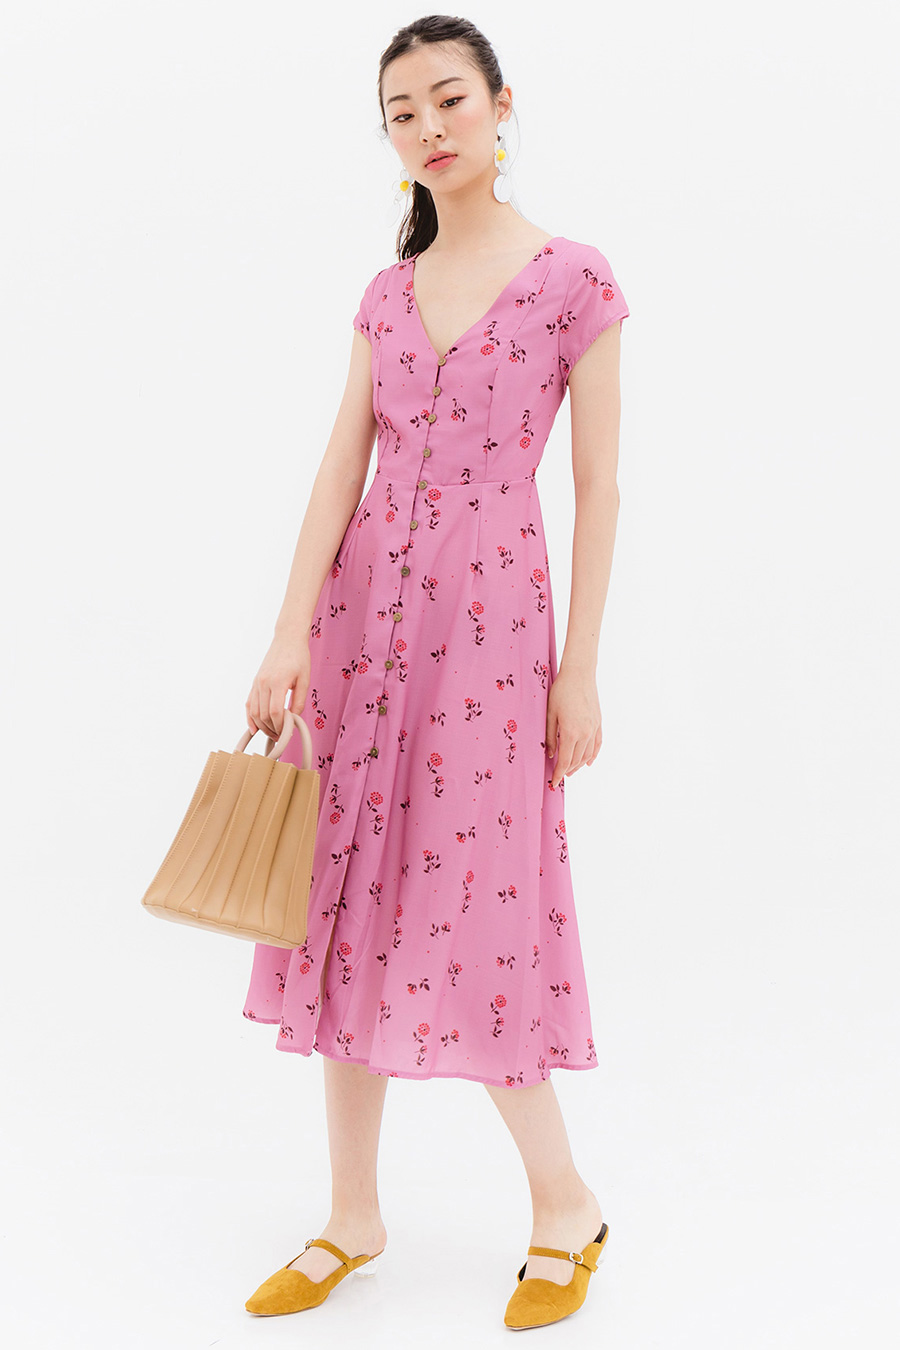 *BO* HARLEN DRESS - PANSY